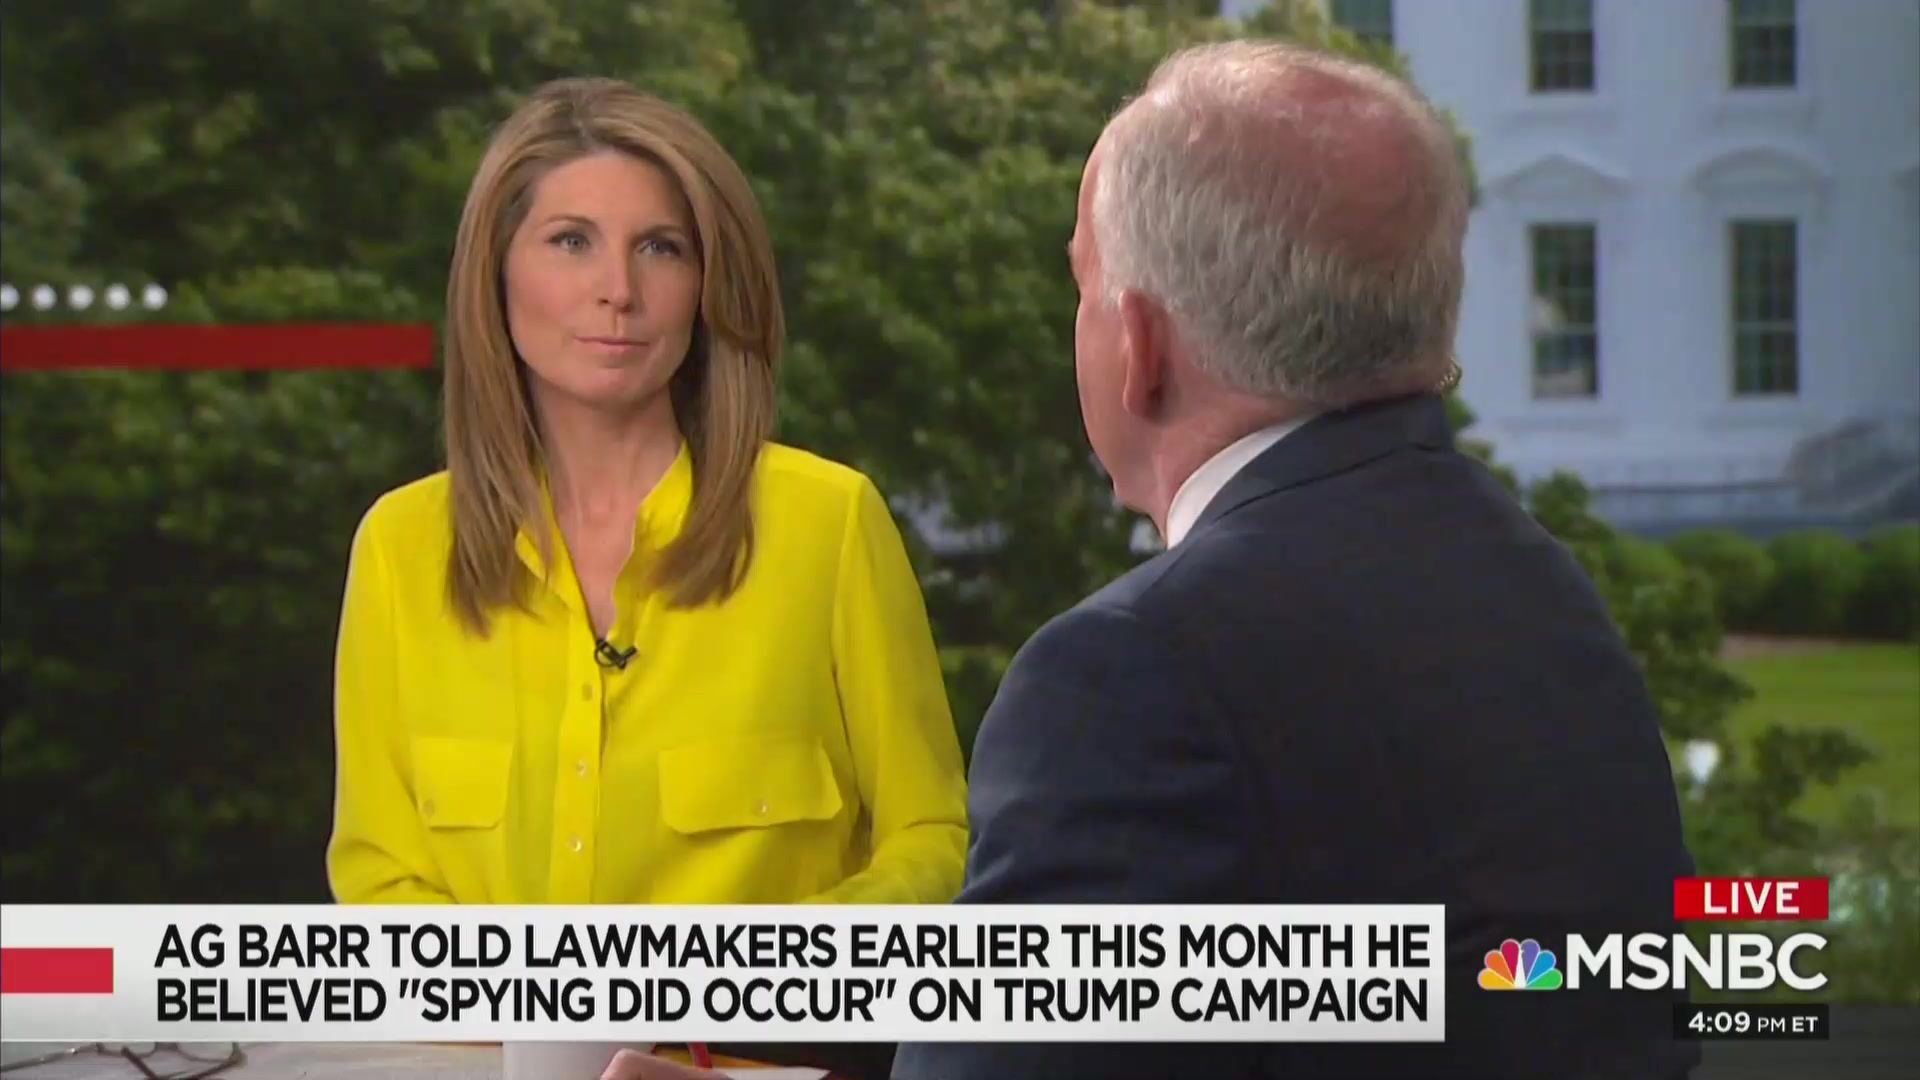 MSNBC's Nicolle Wallace: Does Barr Accusing FBI of 'Spying' Signal 'He's Watched Too Much Sean Hannity'?